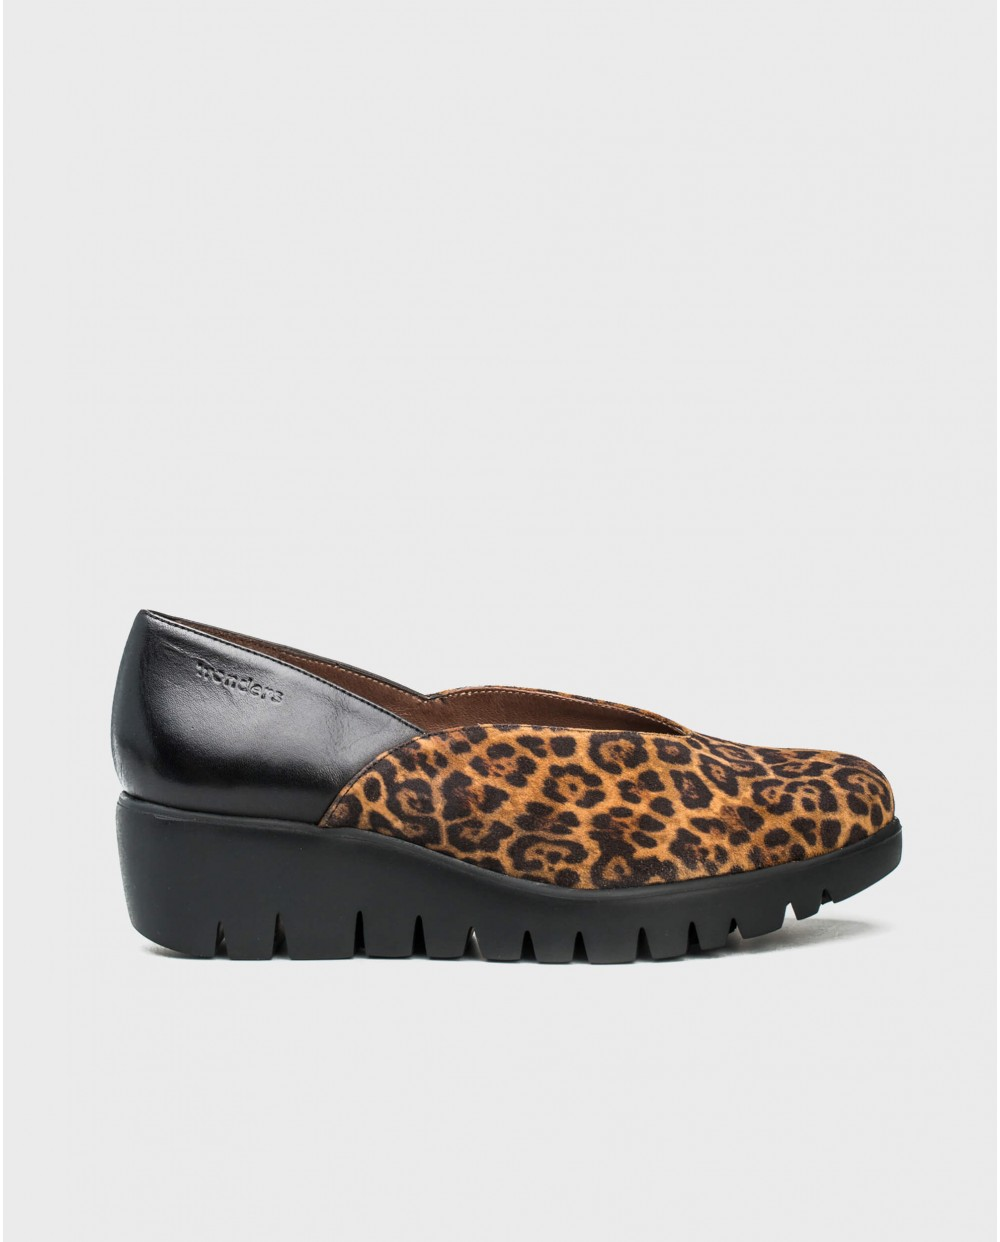 Wonders-Flat Shoes-Moccasin in a combination of animal print and leather